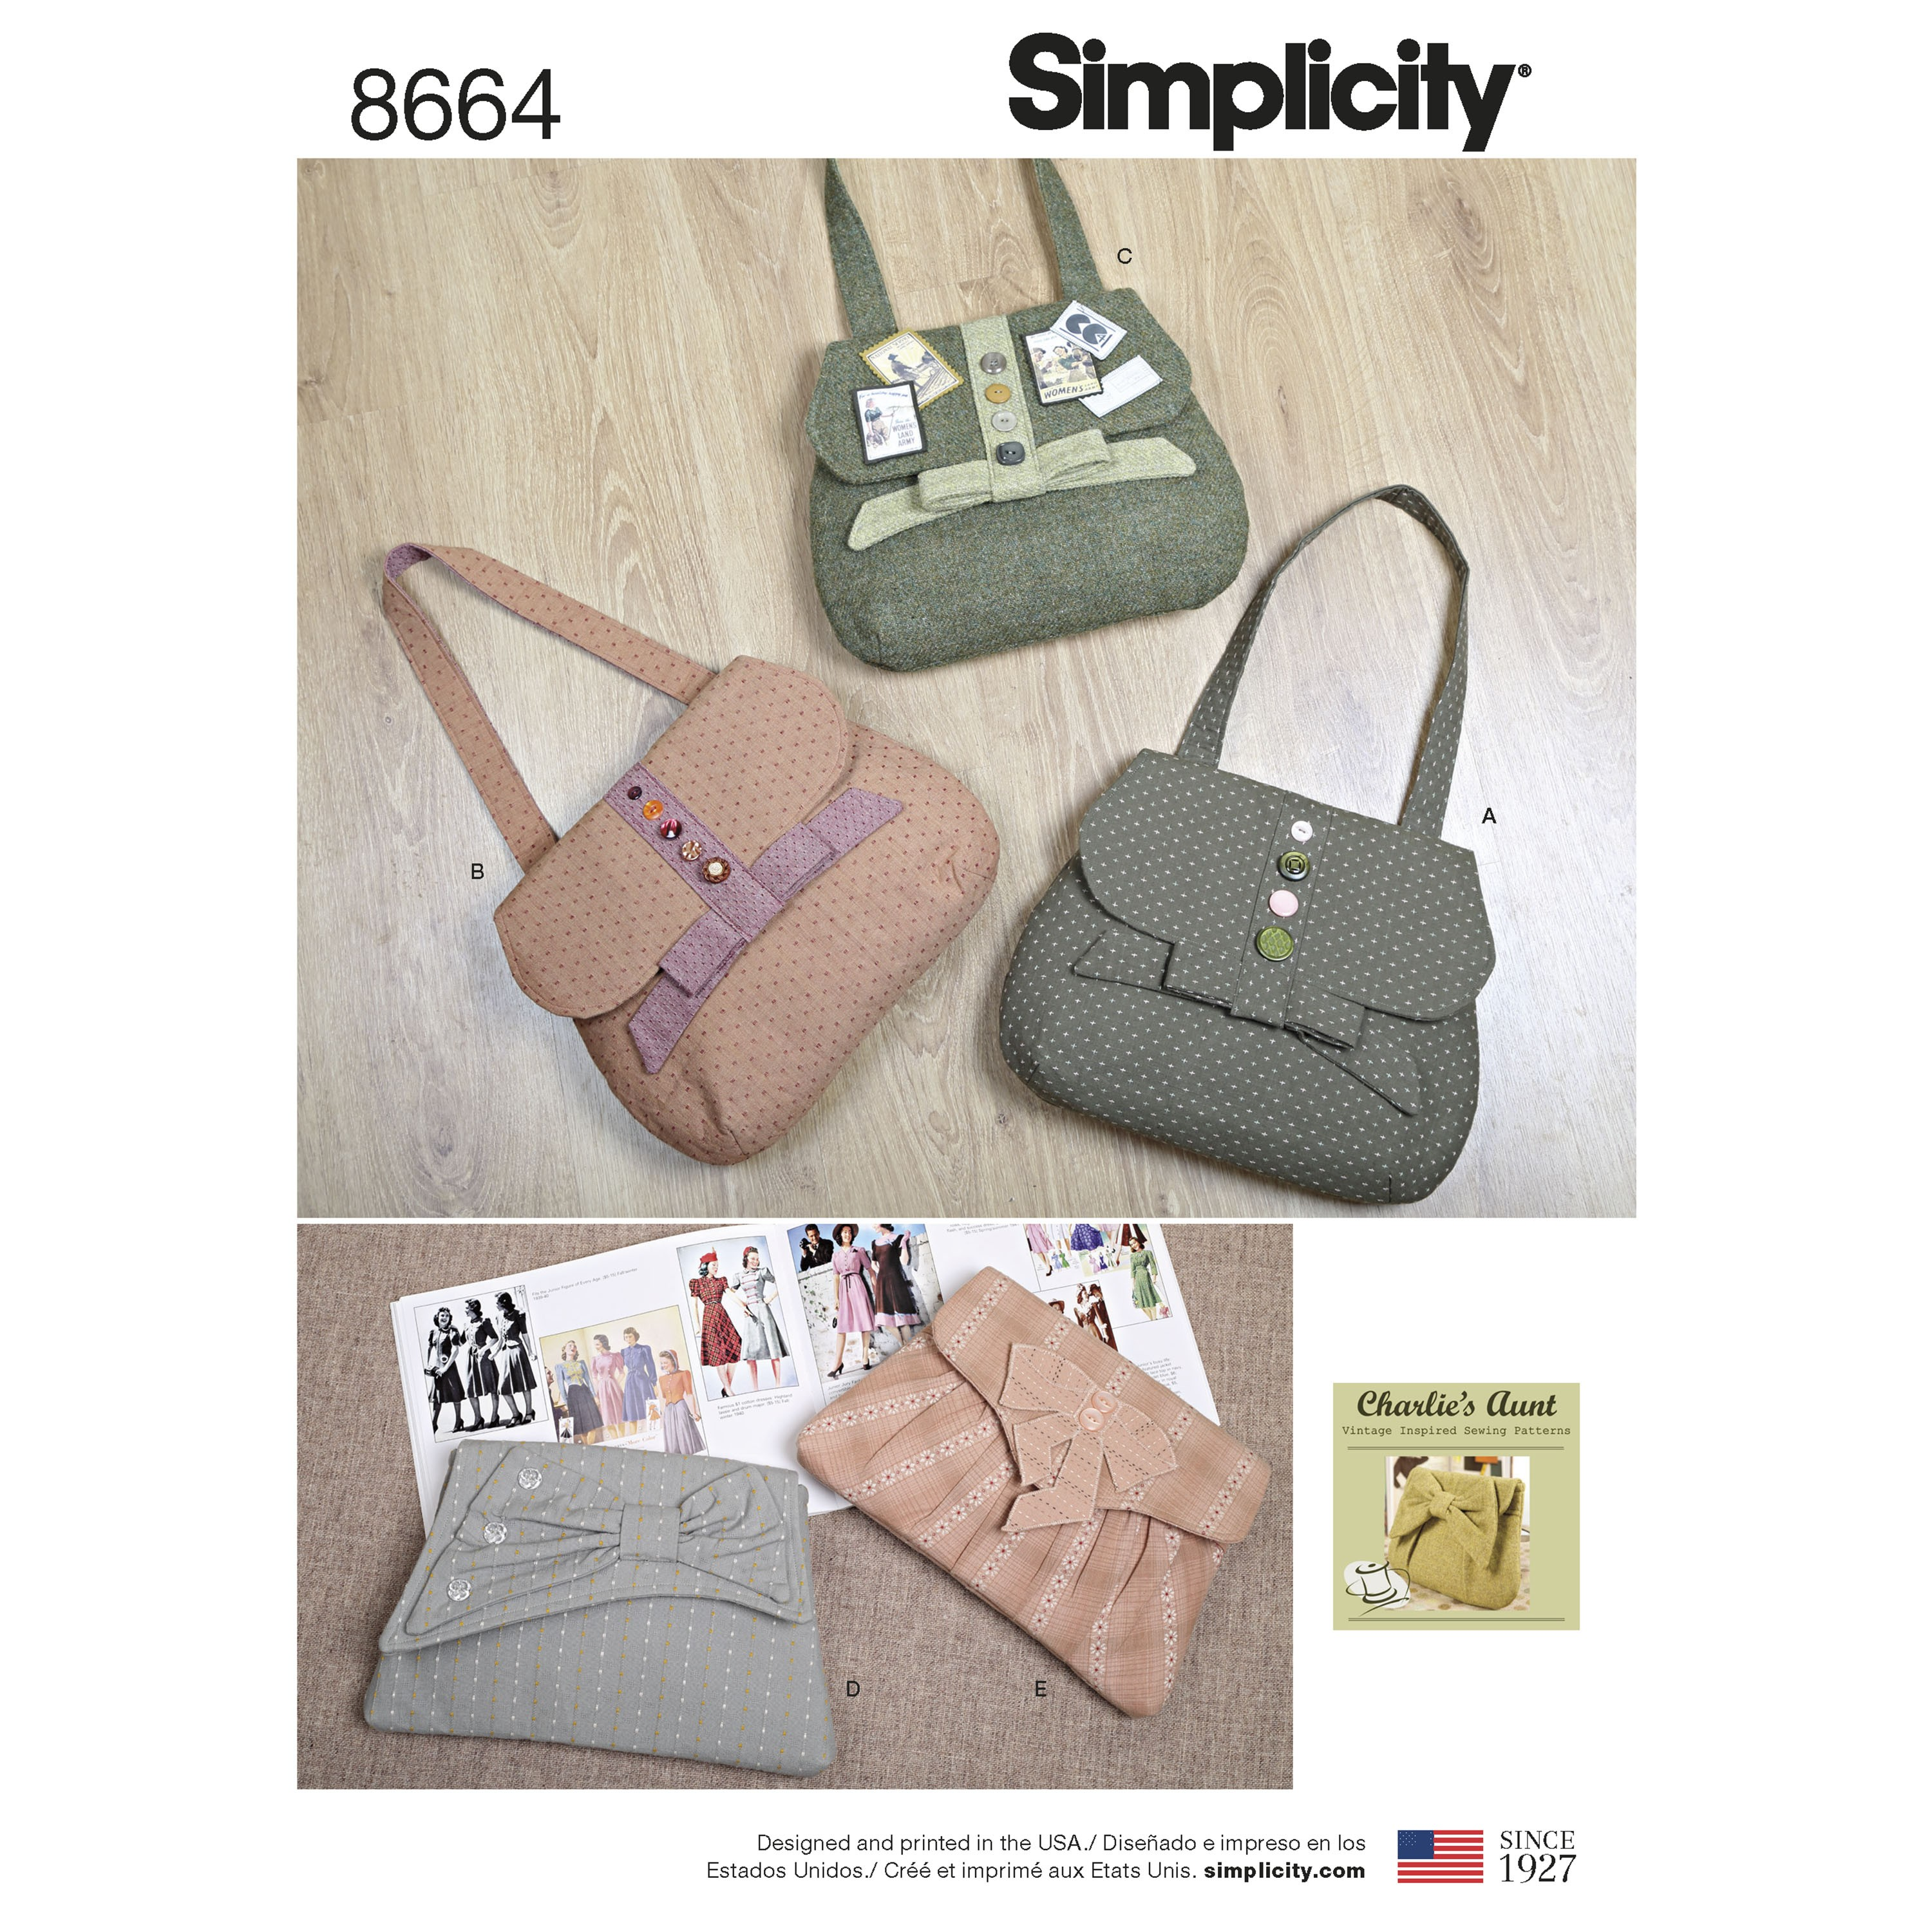 Simplicity Sewing Pattern 8664 Bags Handbags in 4 Styles Purse Clutch